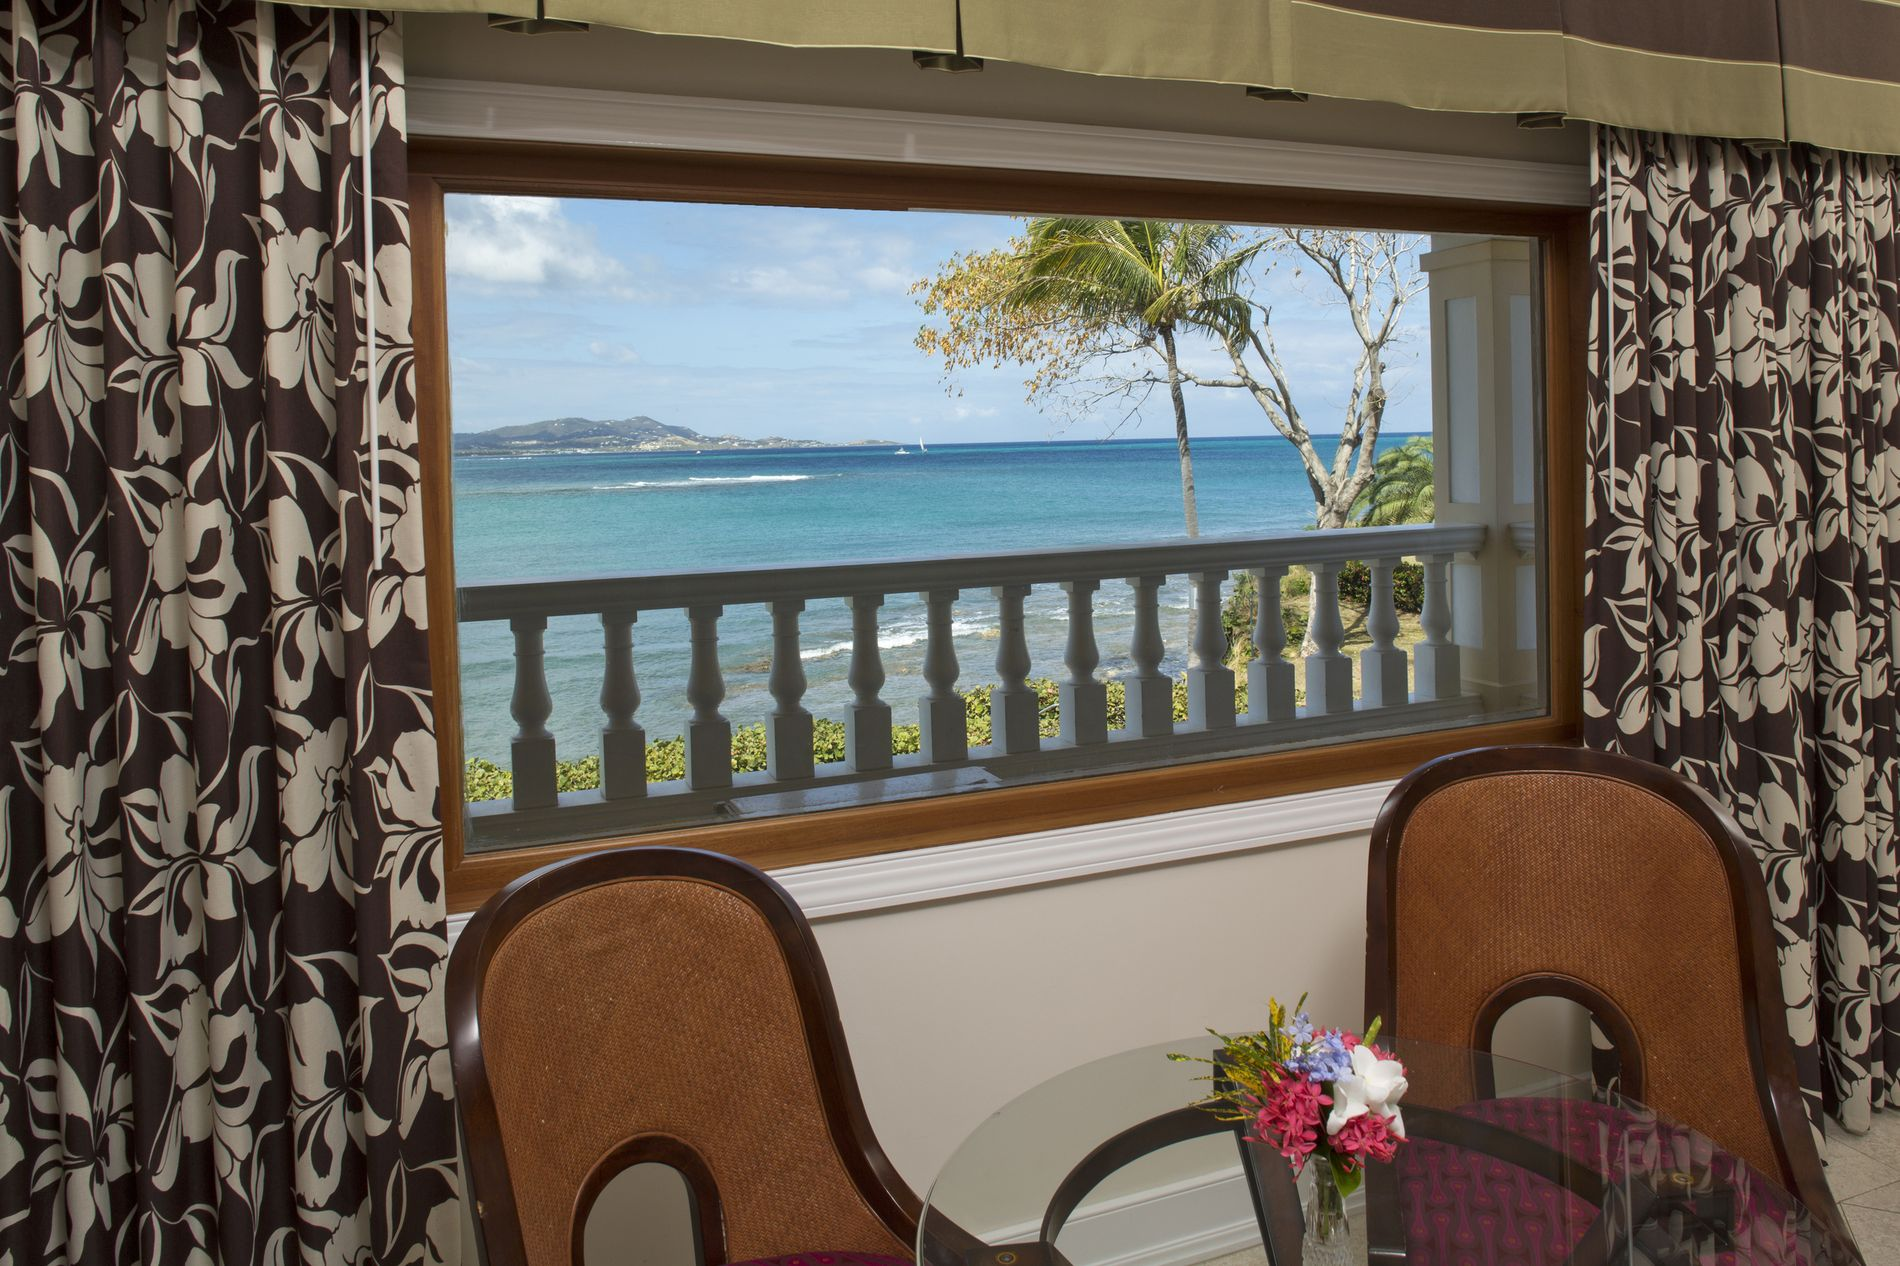 Luxury Beachside Doubloon Window showing Ocean View